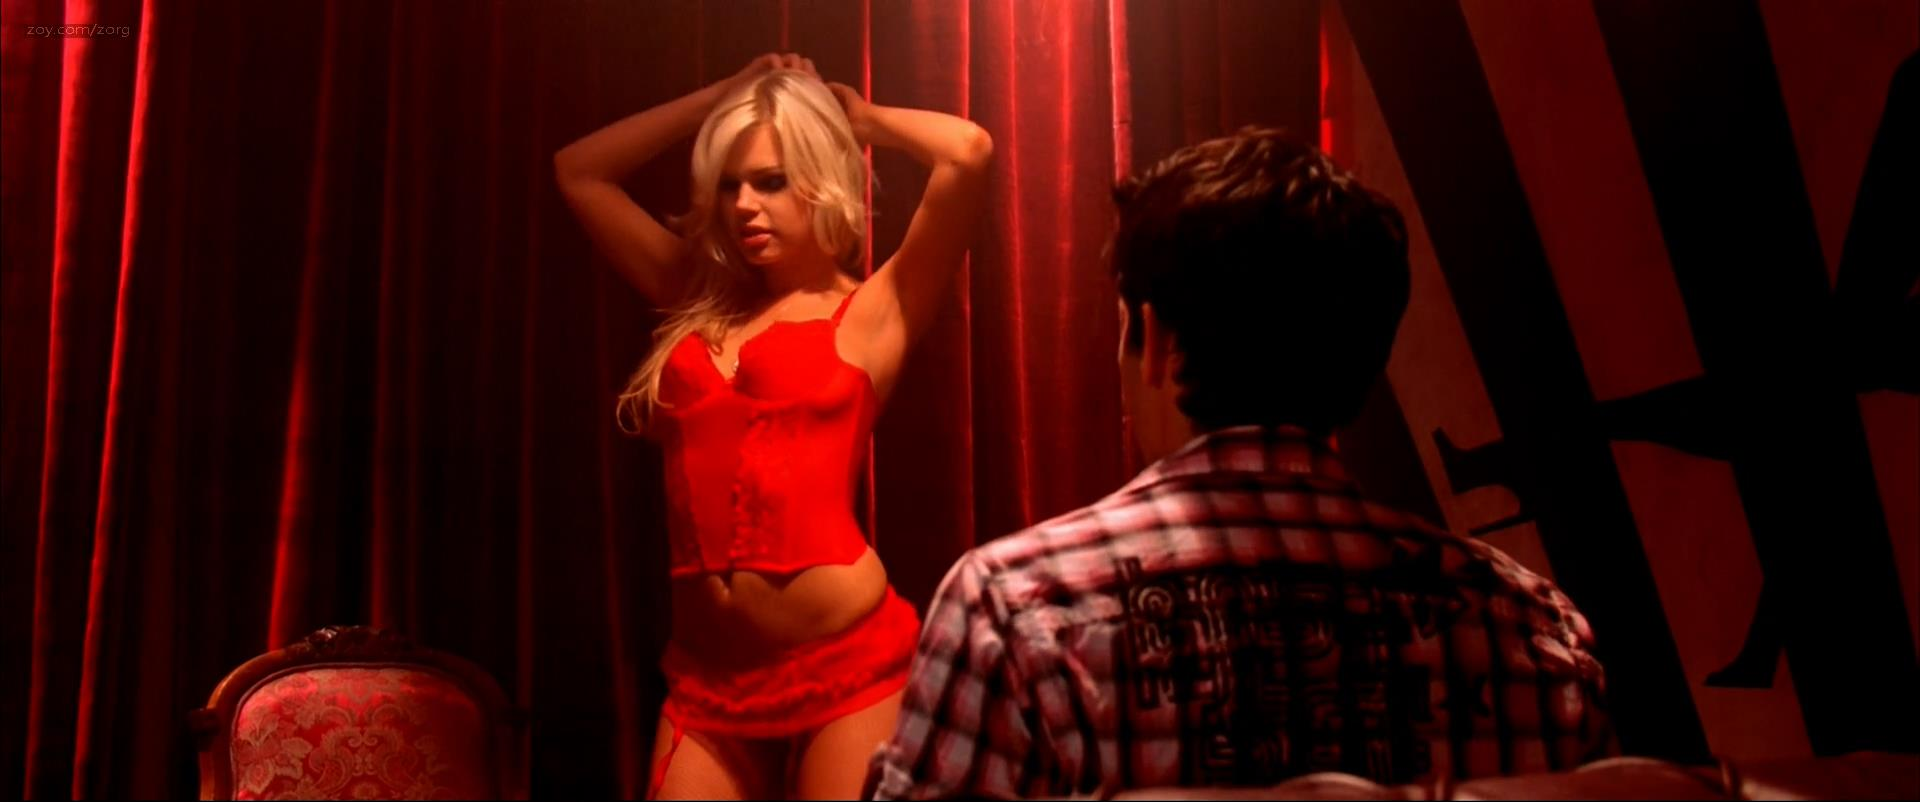 Sophie Monk nude topless as stripper and Janet Montgomery nude and hot sex - The Hills Run Red (2009) hd1080p